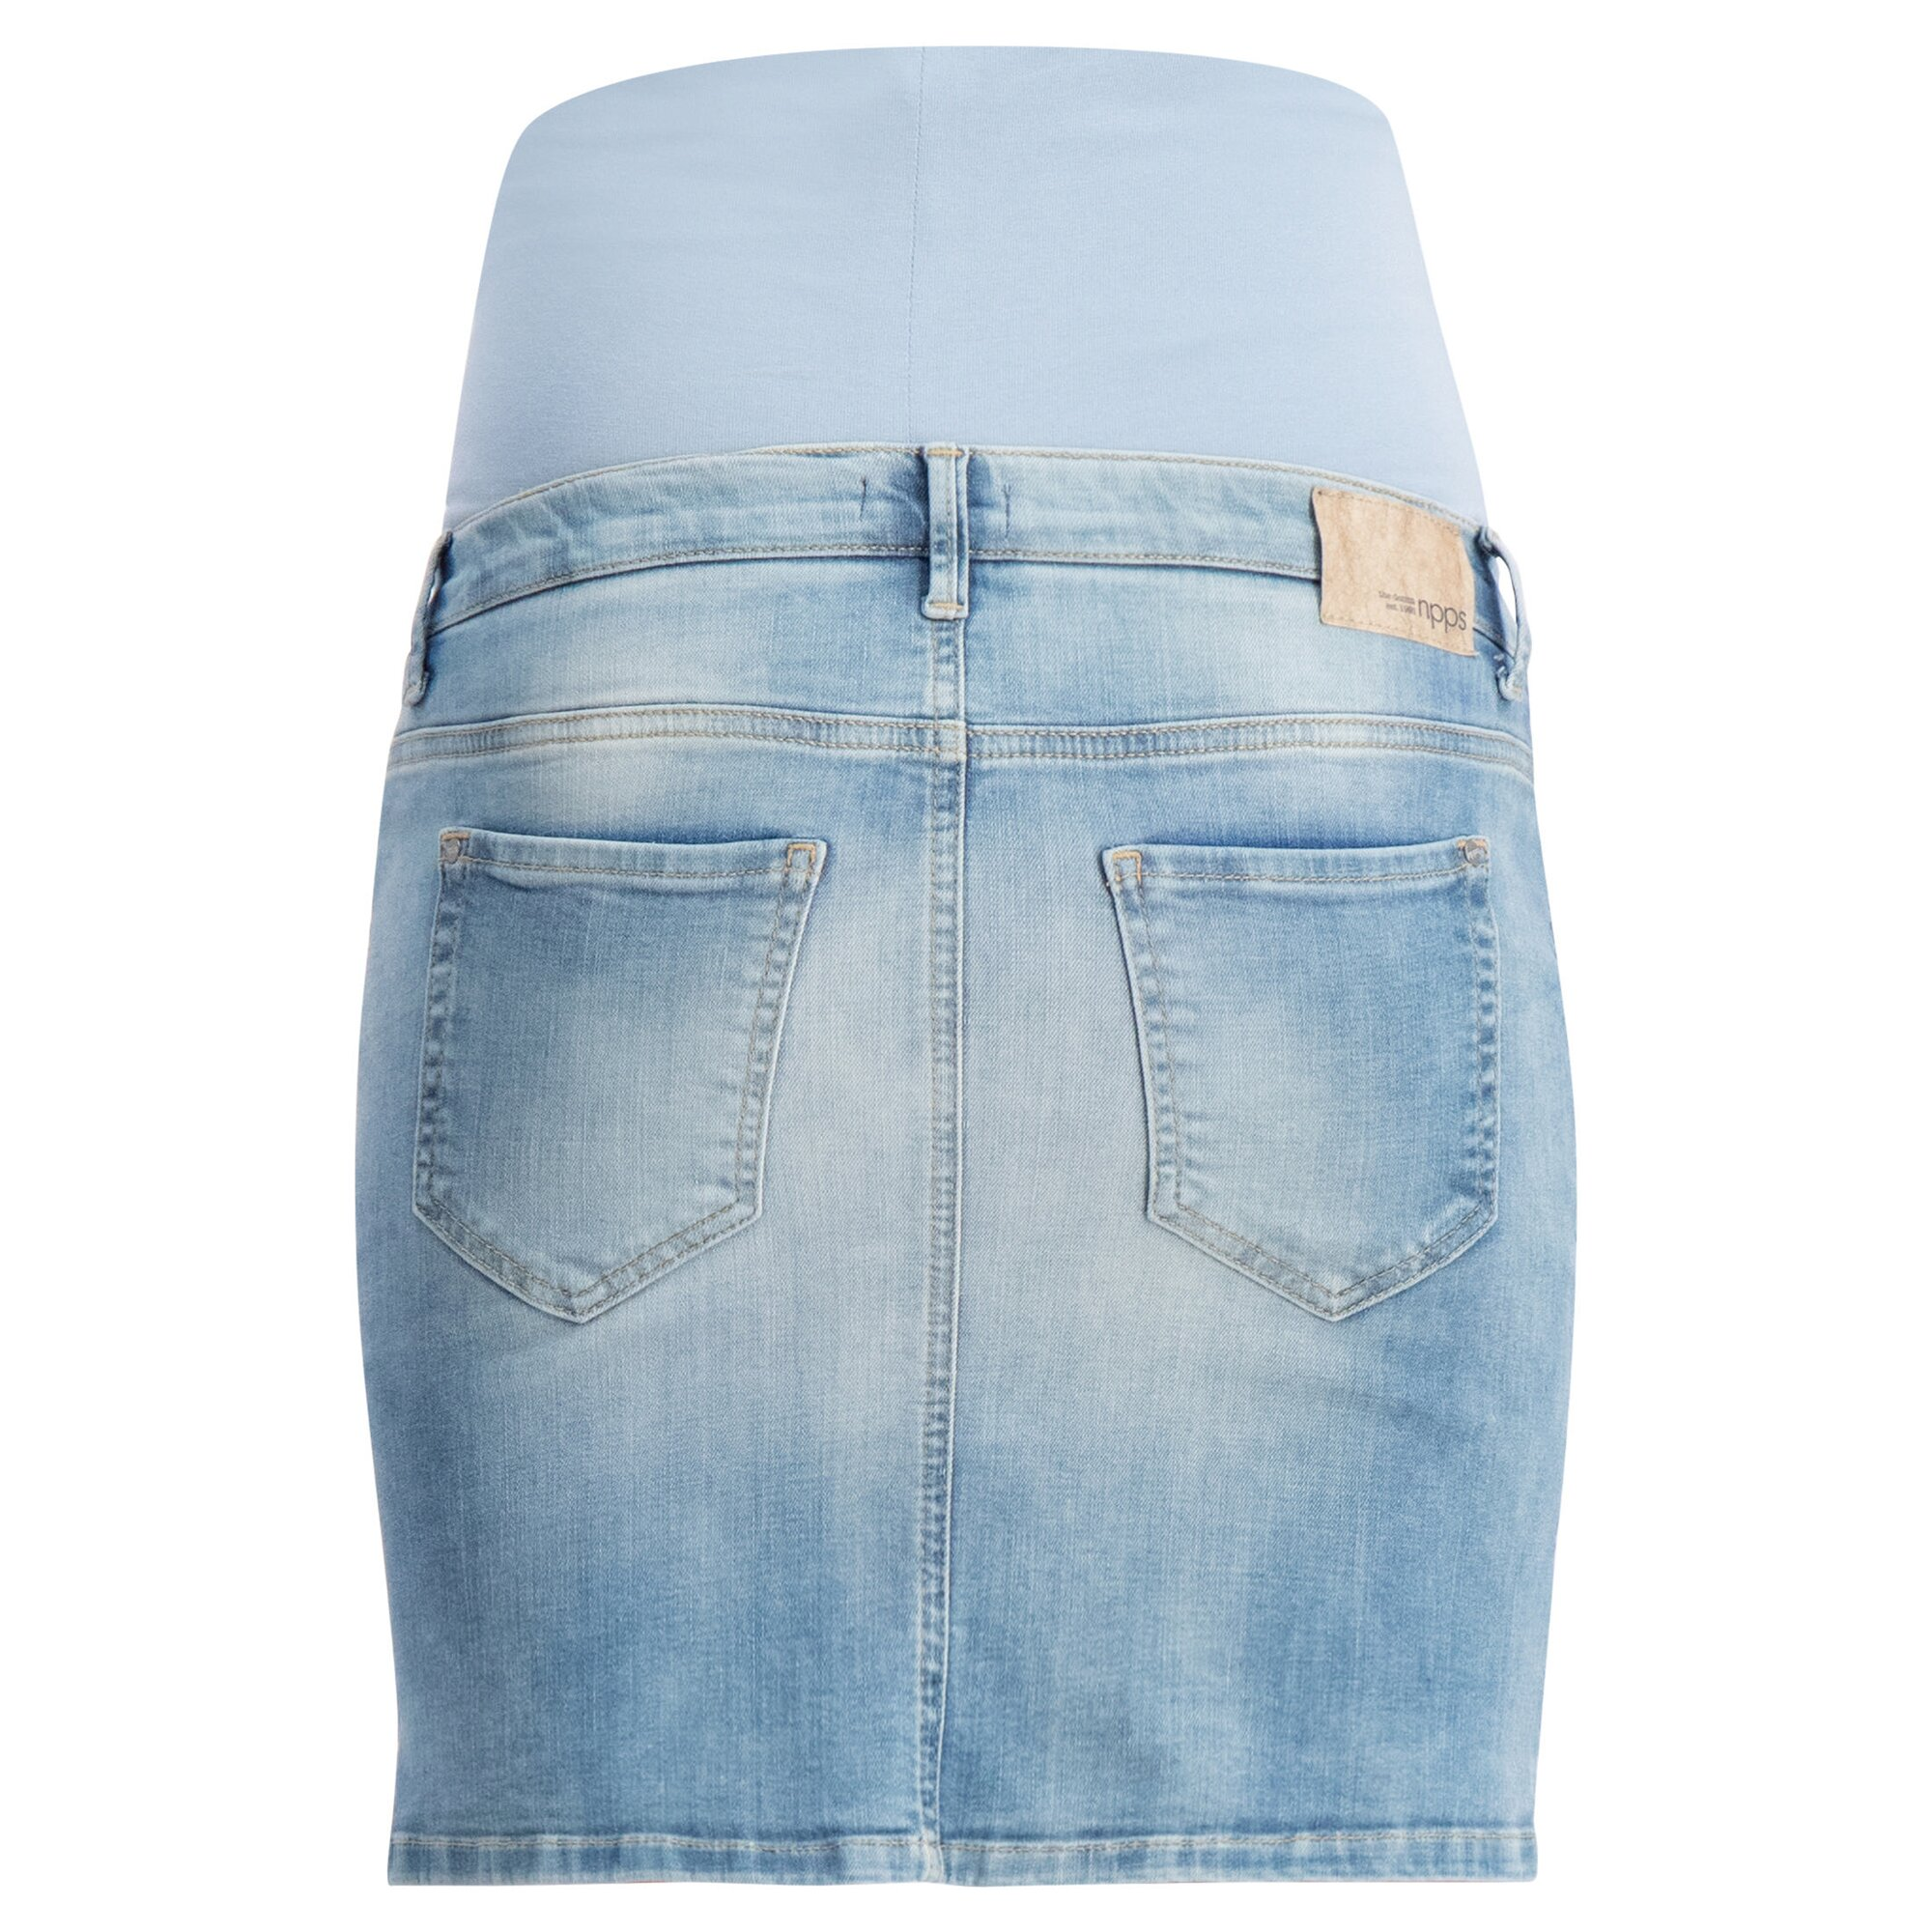 noppies-umstandsrock-jeans-skirt